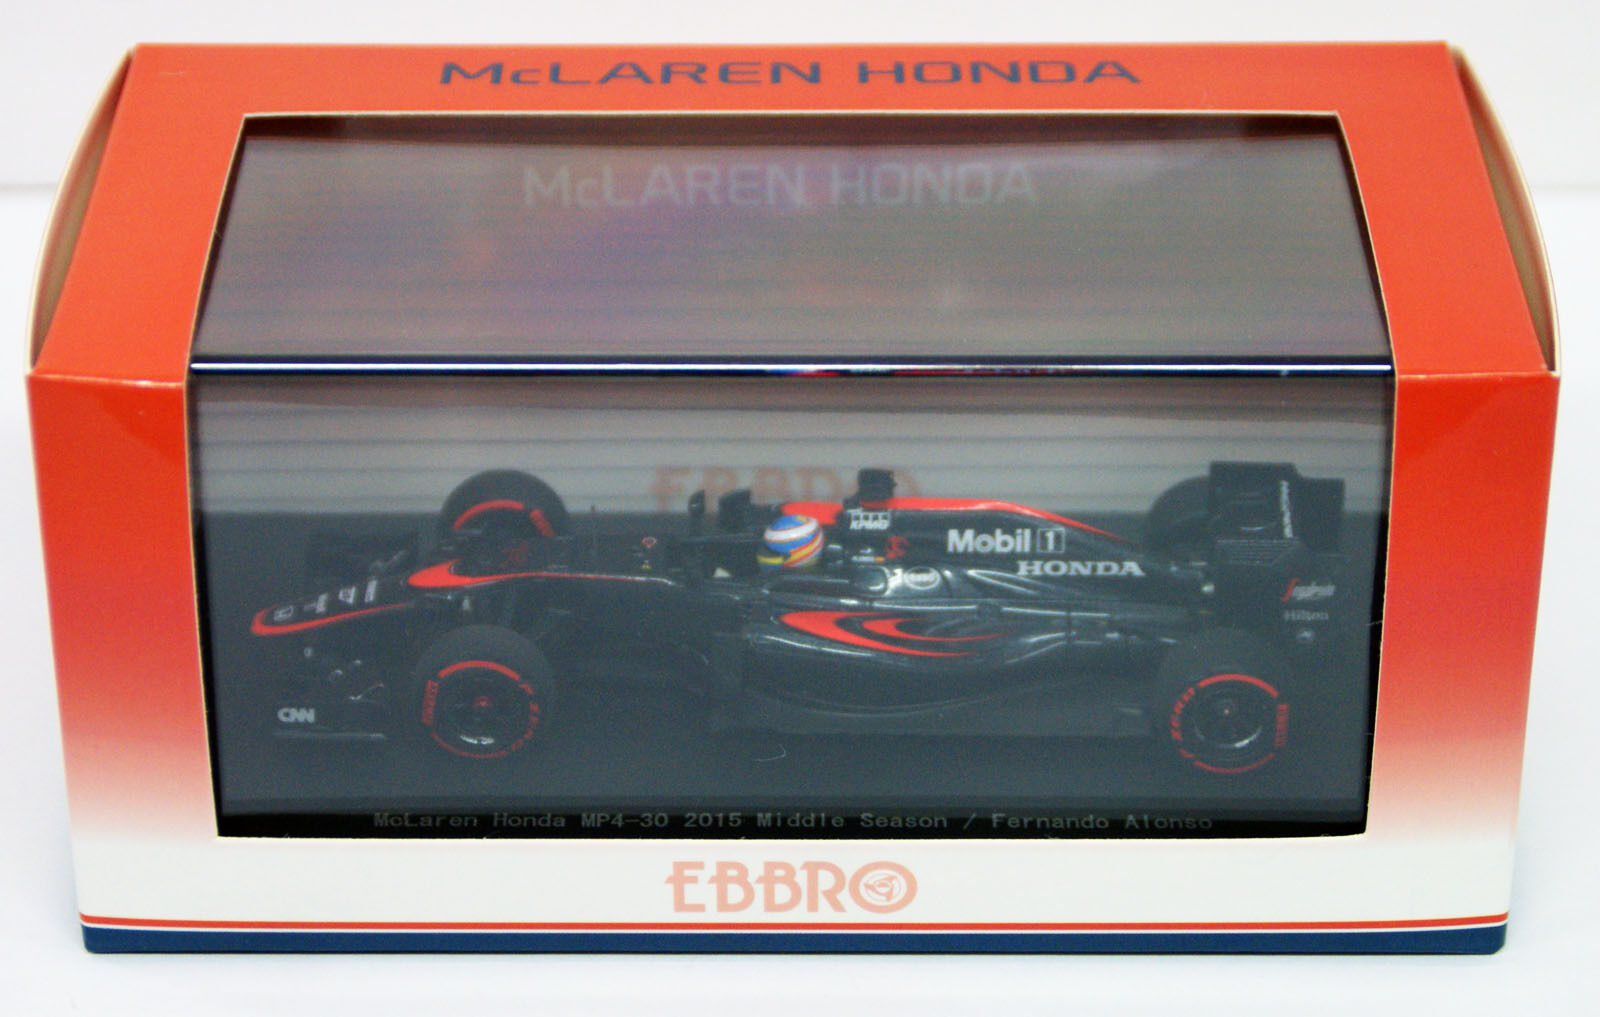 Ebbro 45326 McLaren Honda MP4-30 2015 Middle Season   Fernando Alonso  scale